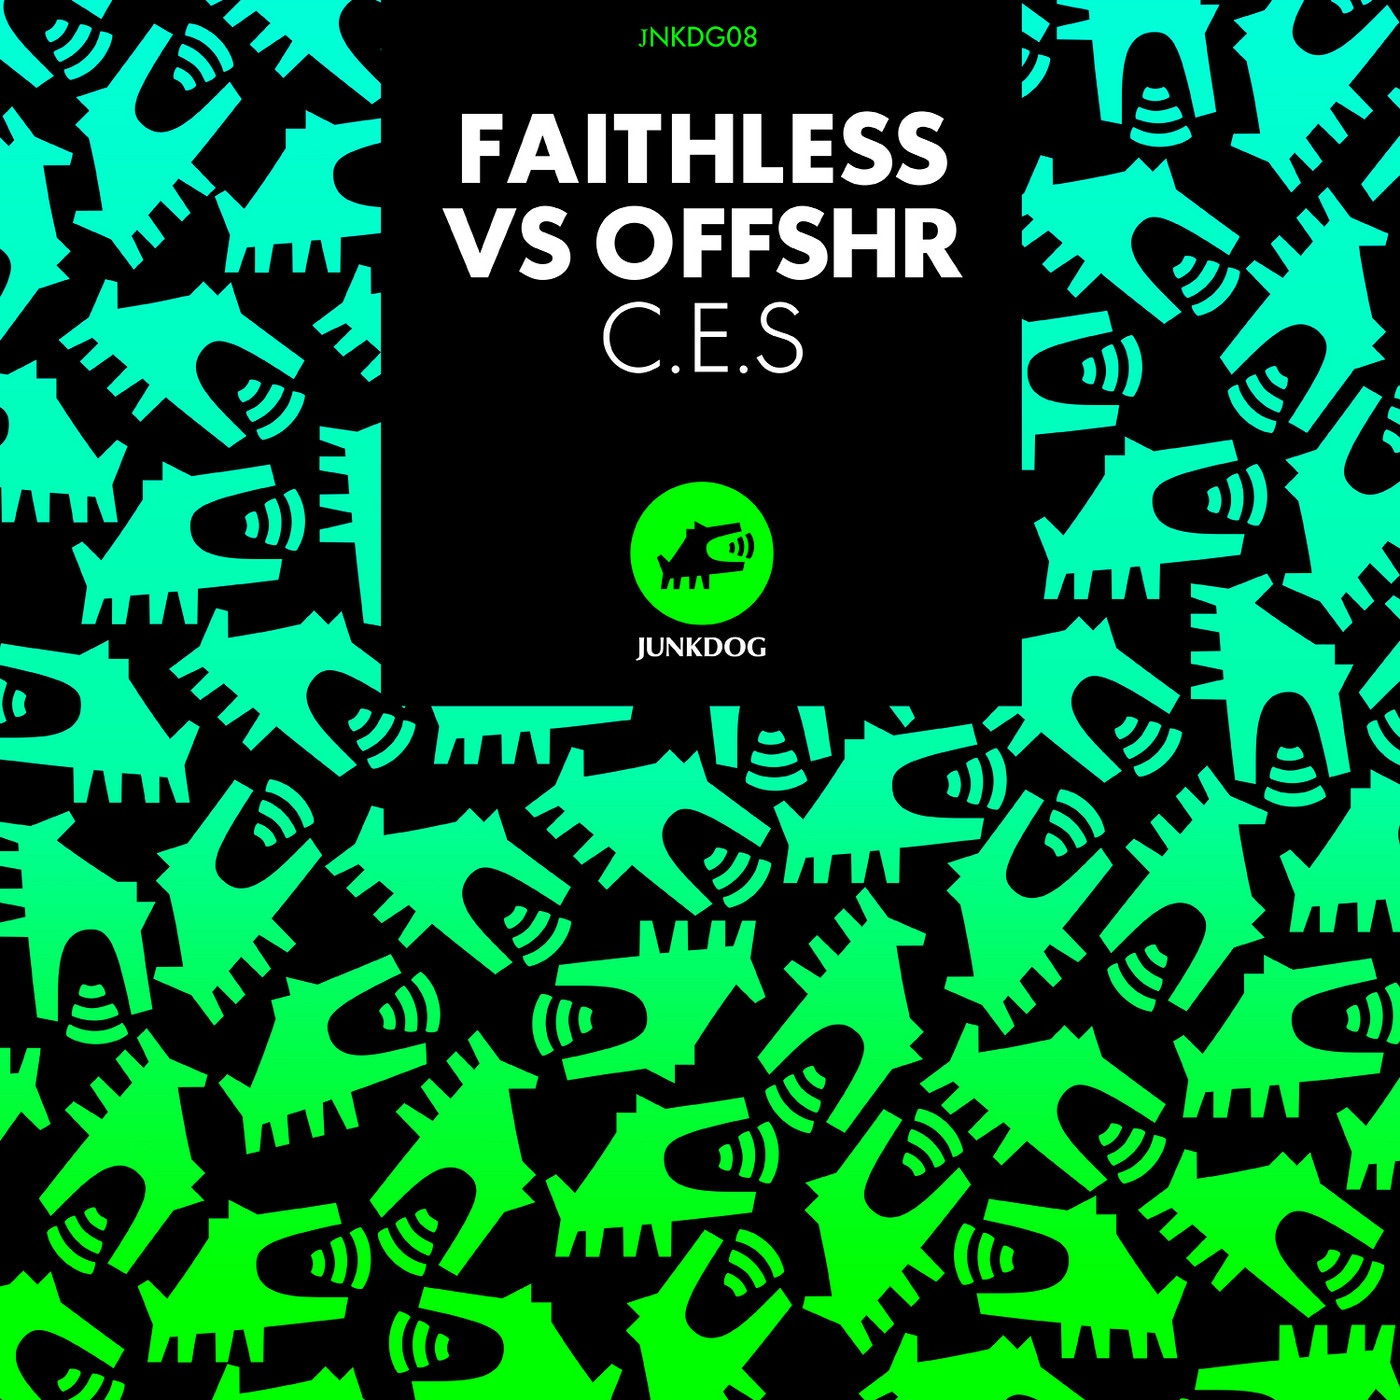 C.E.S (Faithless vs. OFFSHR) - Single